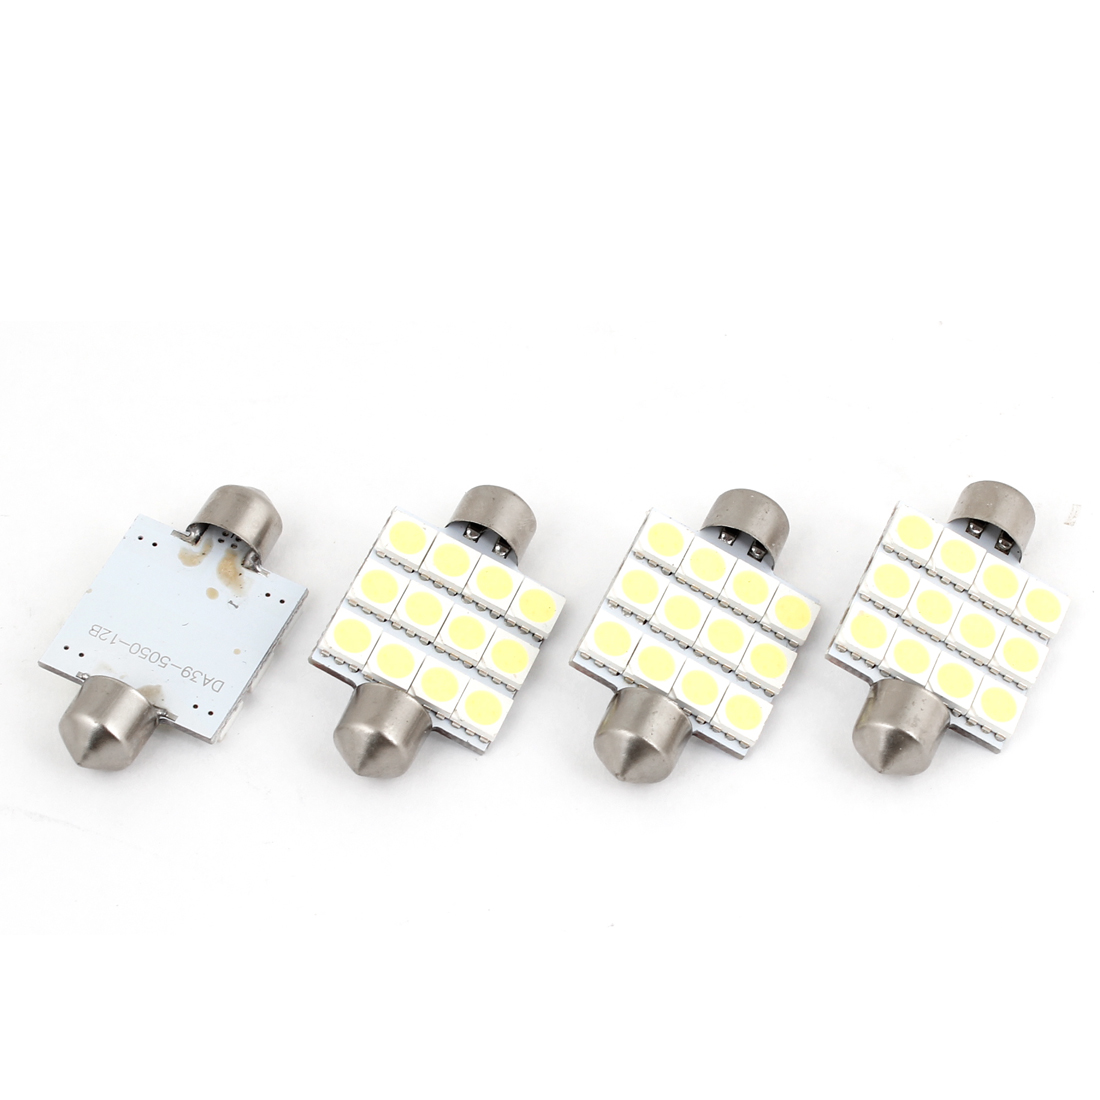 4 Pcs 12 5050 SMD LED White 39mm Festoon Vehicle Dome Map Light